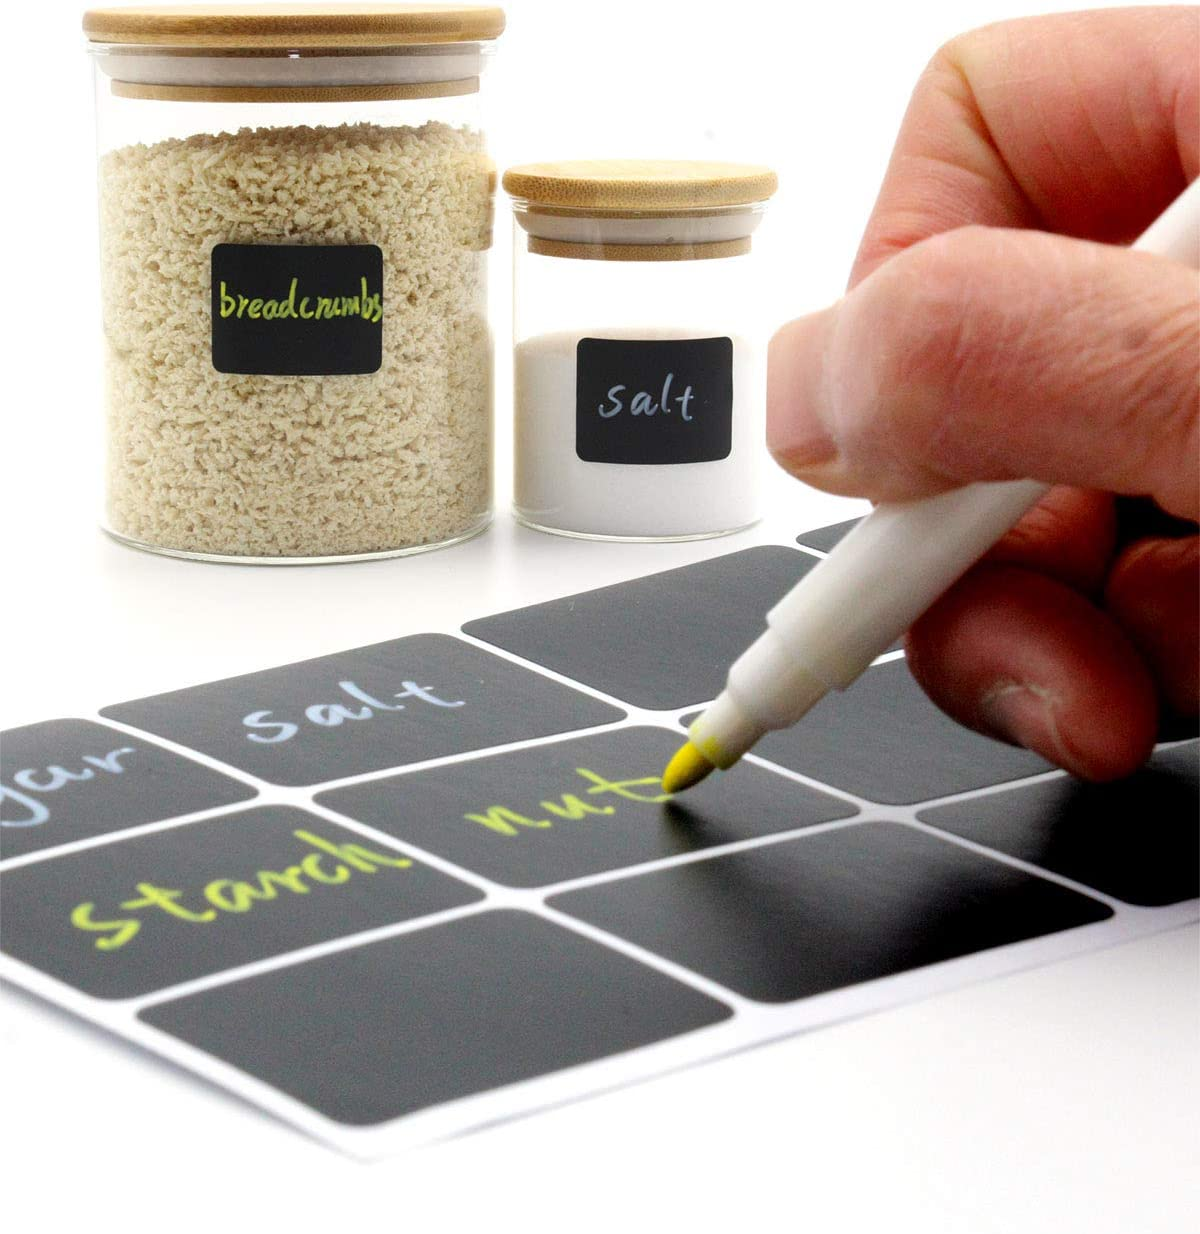 soiwell Chalkboard Labels for Storage Bins Chalk Sticker Label for Kitchen Spice jar,Food containers,Bottle,Garden Plants,Mason Jars, 120 squqre Labels with Liquid Chalk pens